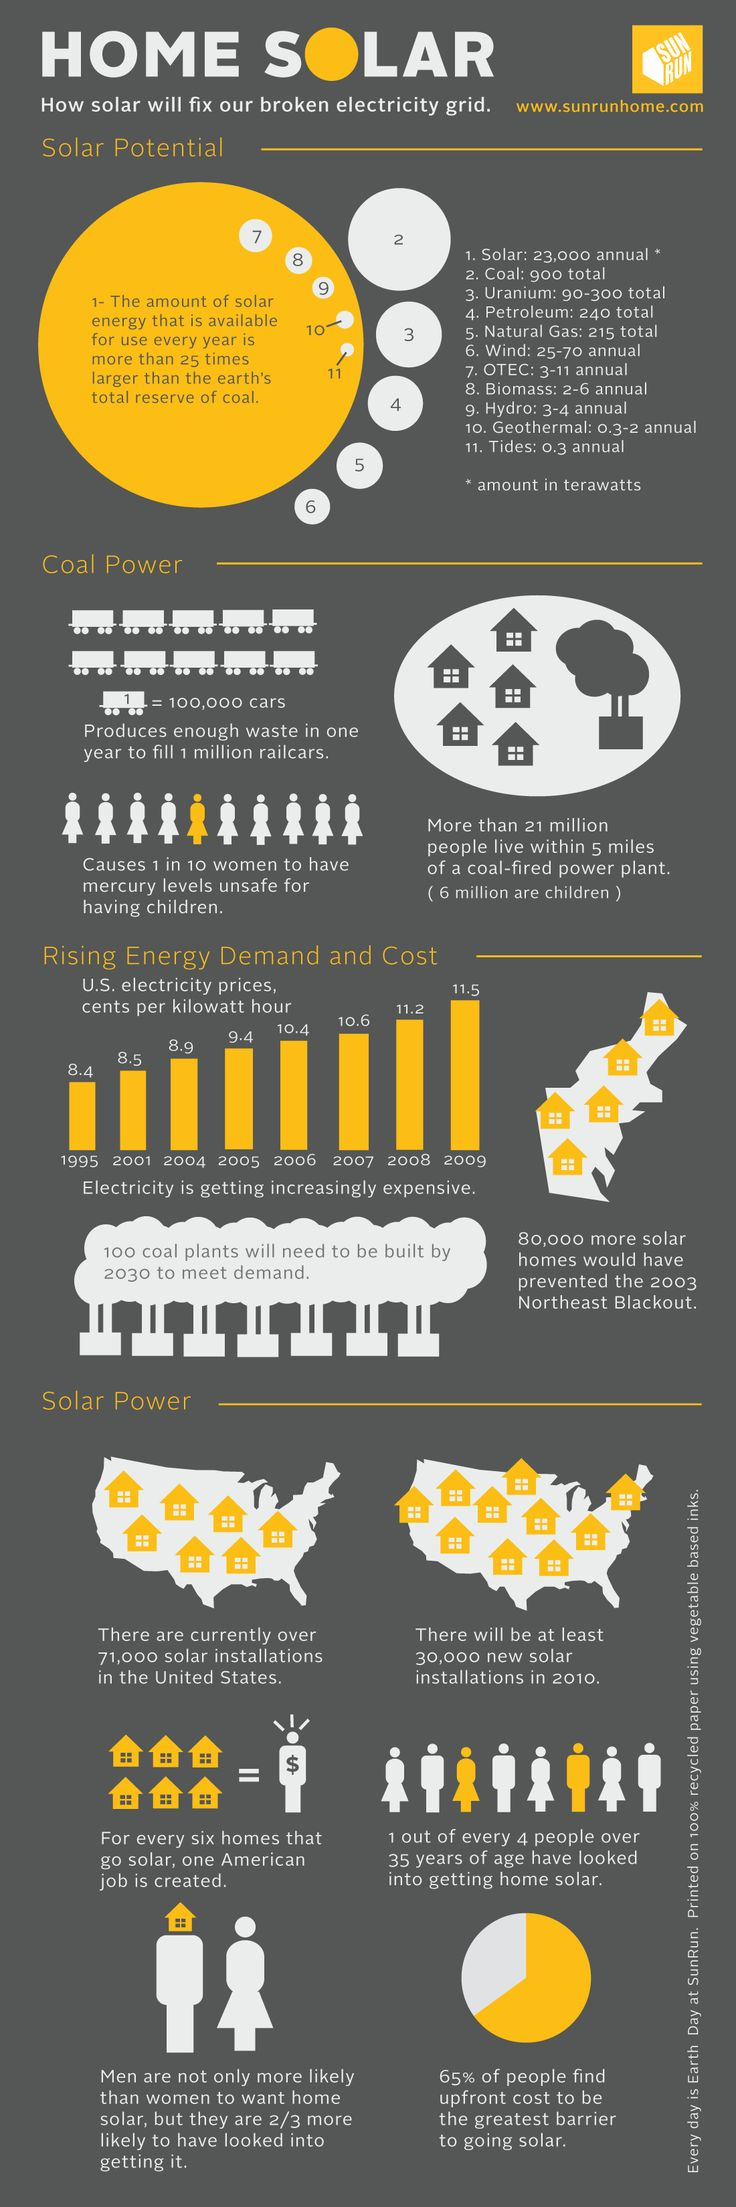 As traditional power sources increase in cost, the cost of solar is coming down. I'm going all in with my bet that solar will continue to expand.